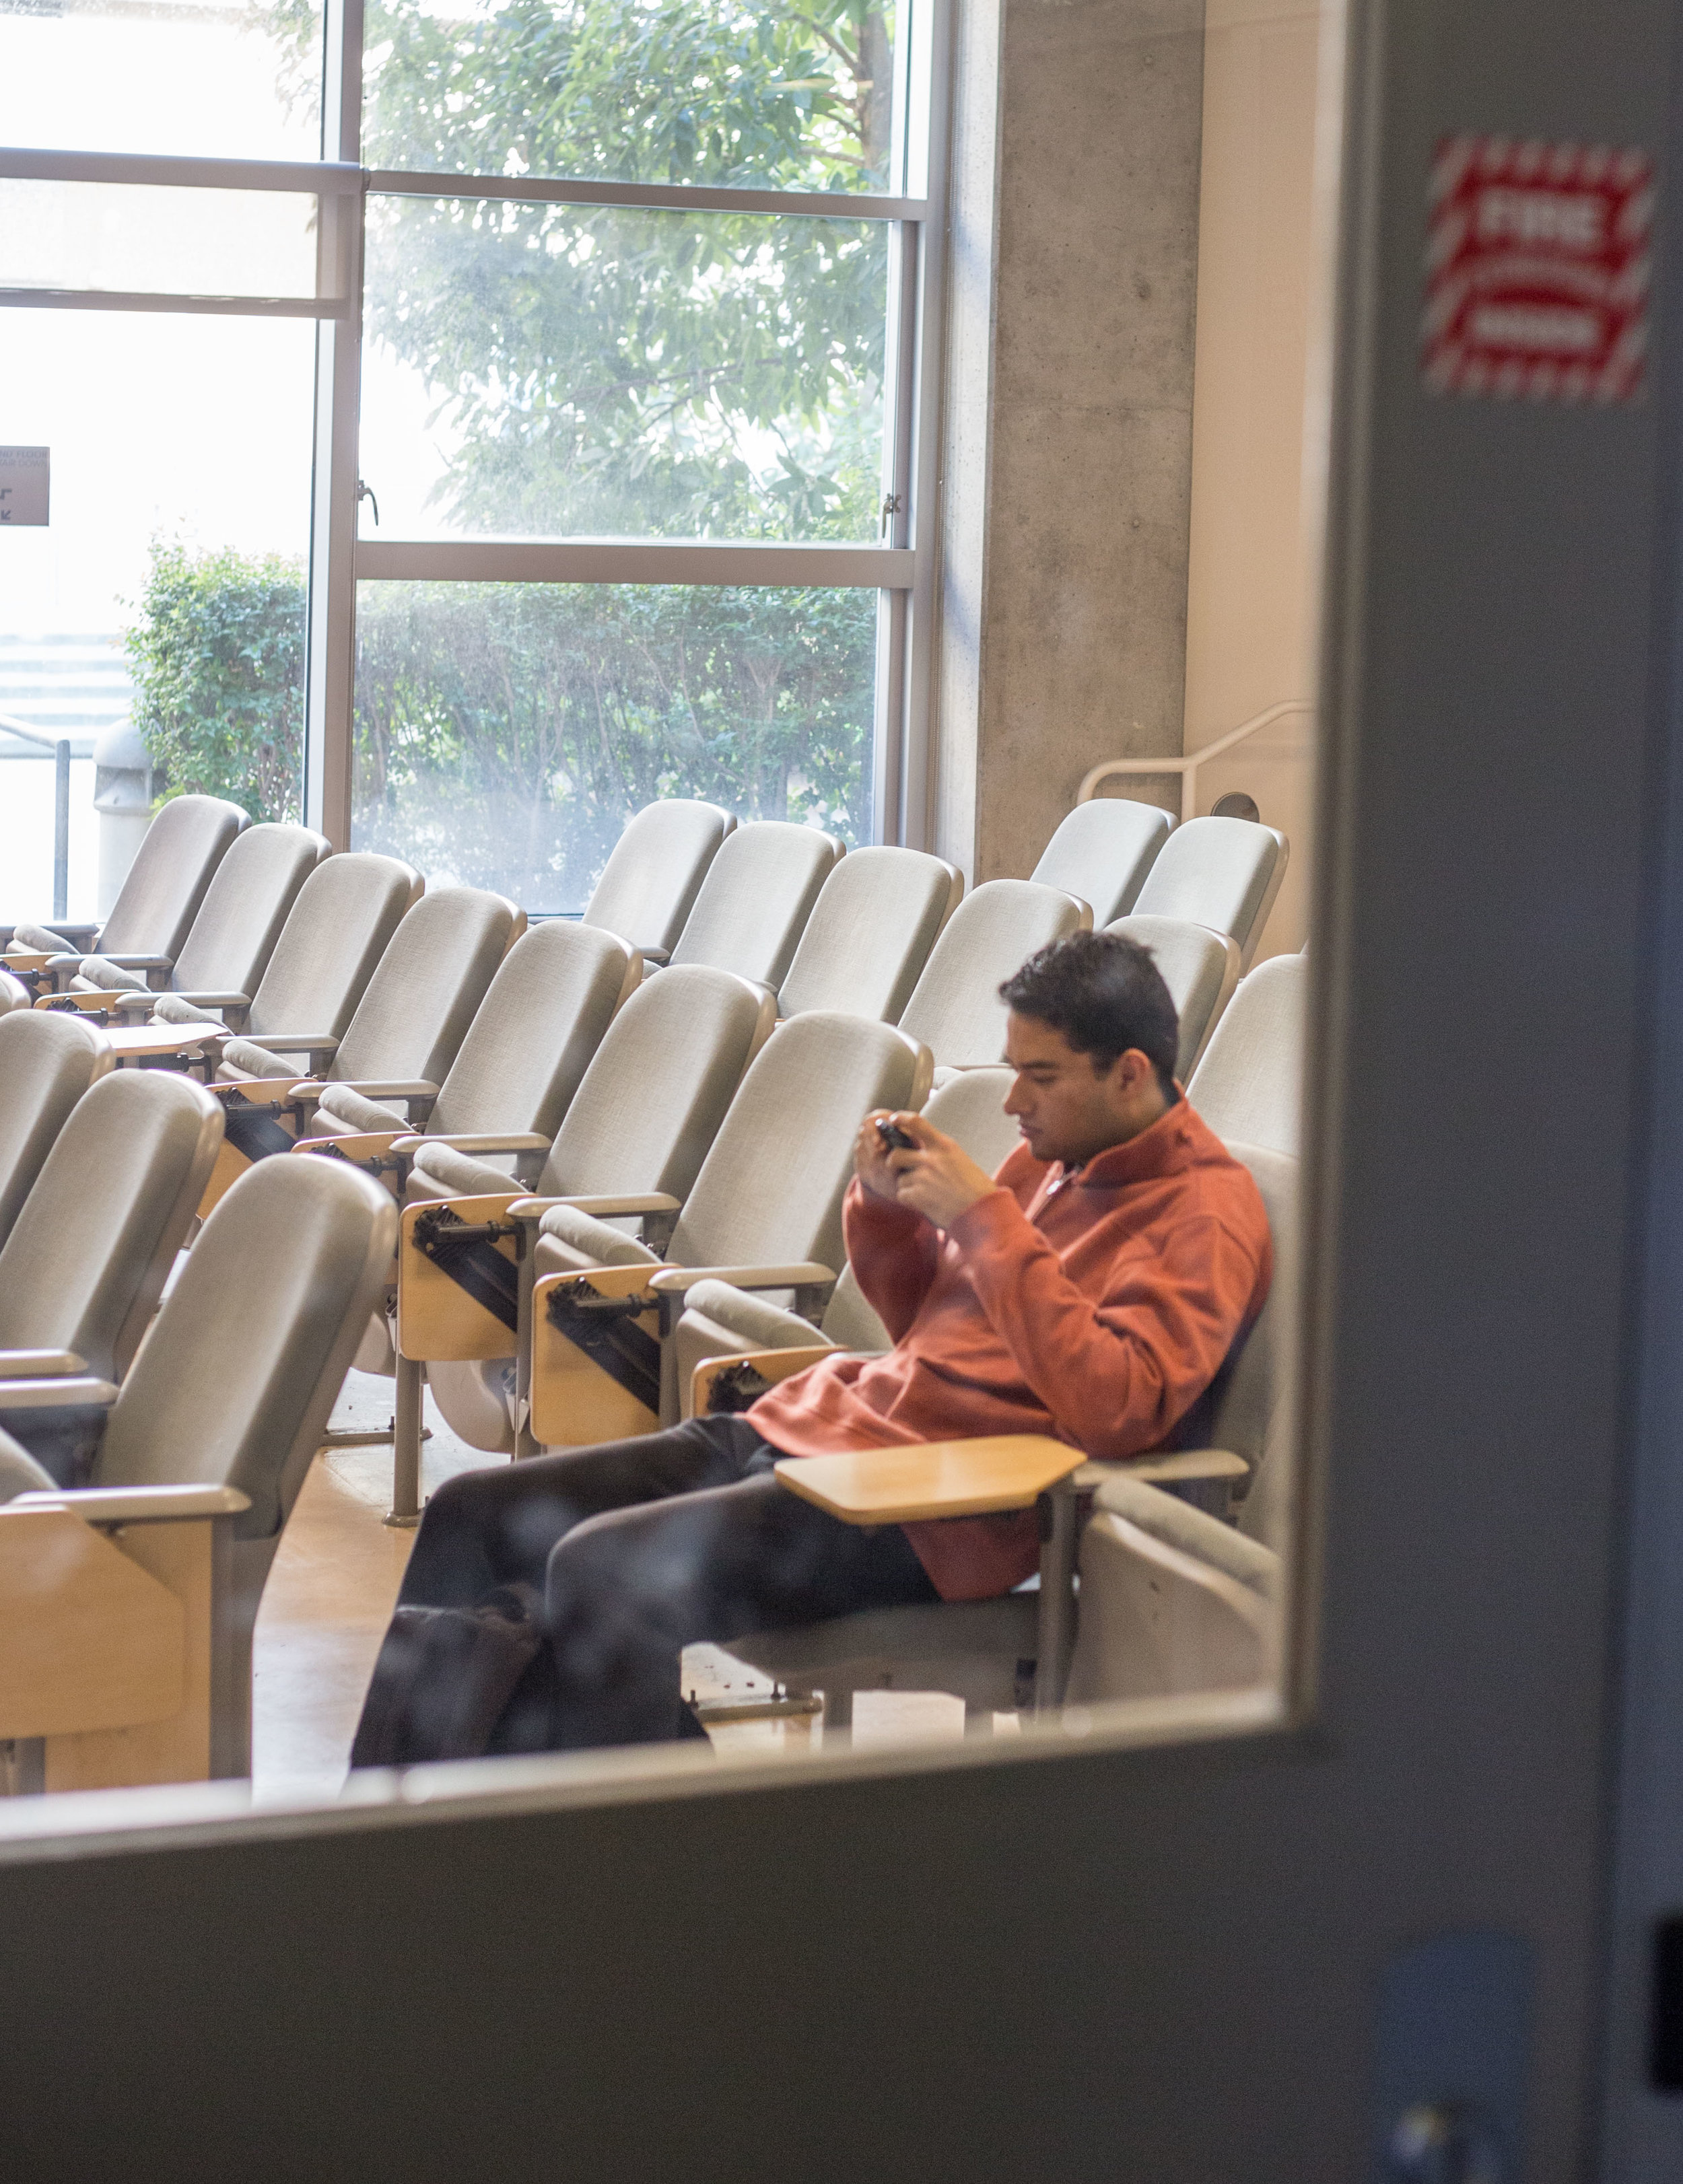 """Santa Monica College student, refused to give name, sits alone in a classroom after SMC students were notified via email and phone call that all classes on Wednesday, December 6th were canceled due to the close proximity to the Skirball fire. This took place on SMC's Main Campus Humanities and Social Sciences building on Wednesday, December 6th 2017 in Santa Monica, Calif. The email stated that the """"fire is affecting the air quality and the road conditions in and around SMC area"""" and was sent out at 8:49 am. (Photo by: Thane Fernandes)"""